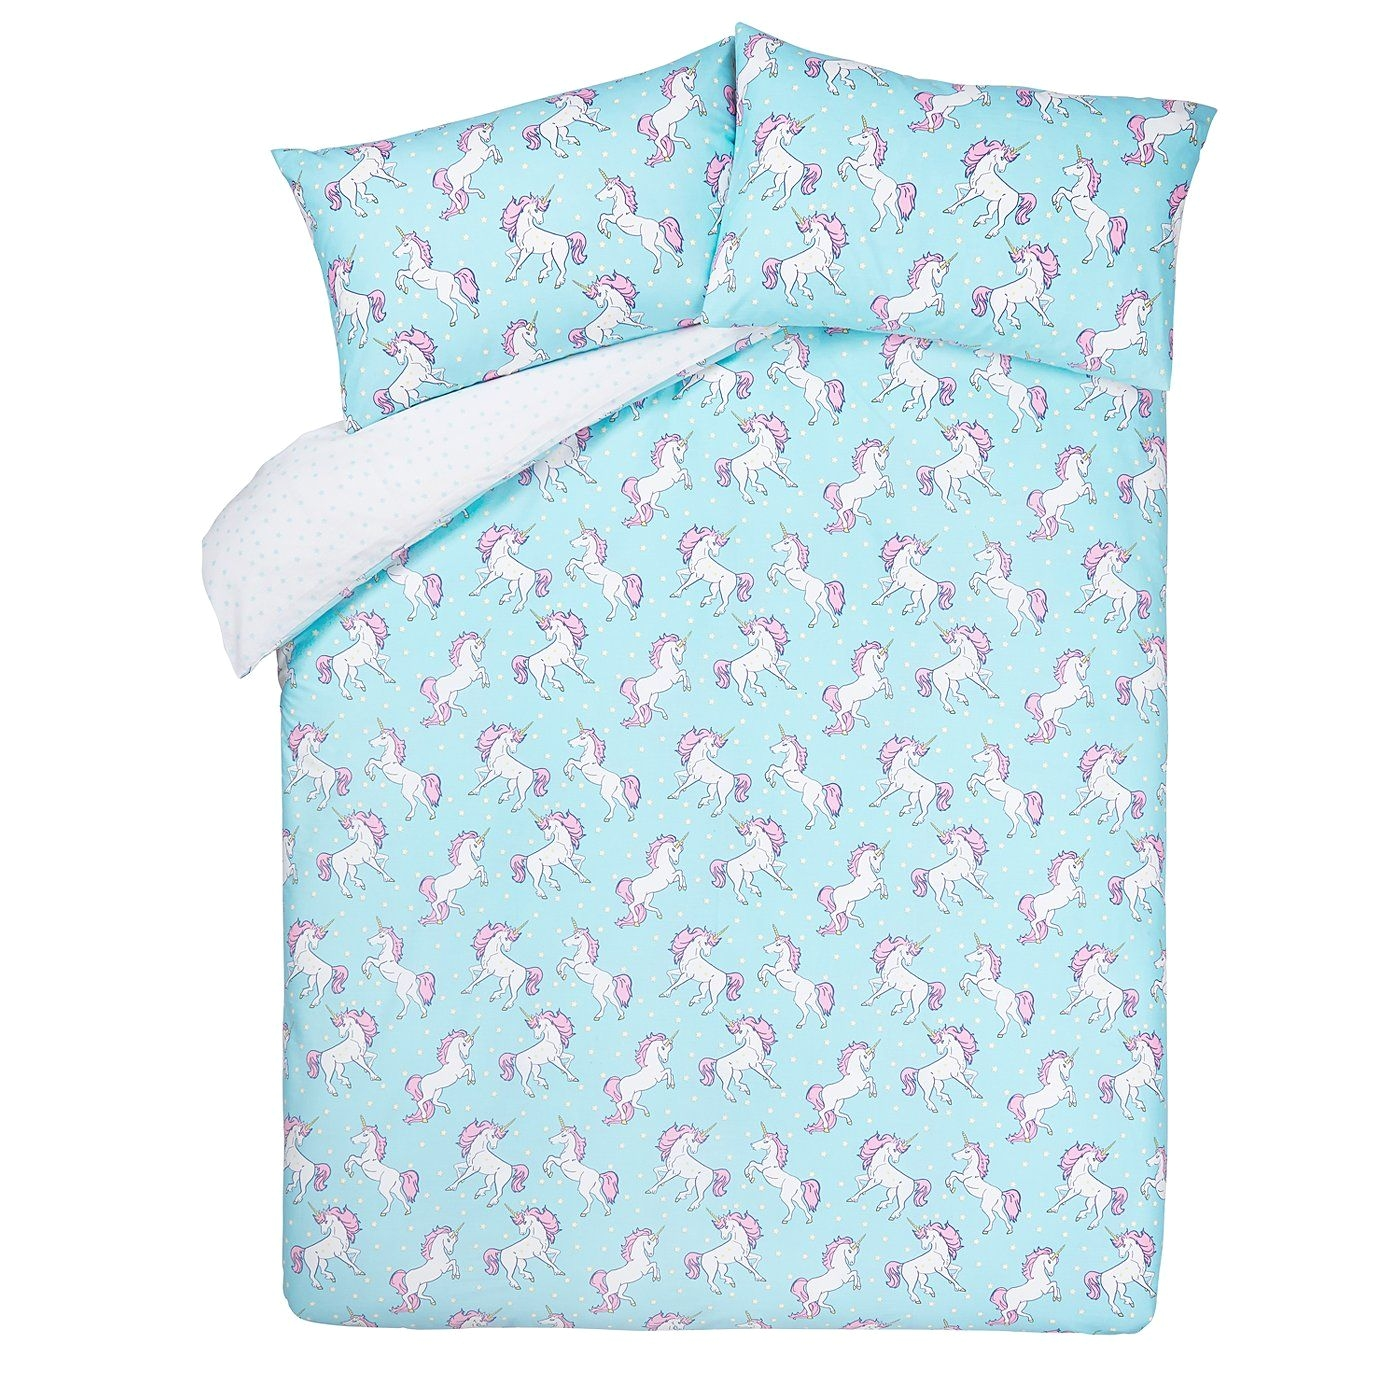 buy unicorn bedroom set from our duvet covers range today from george at asda